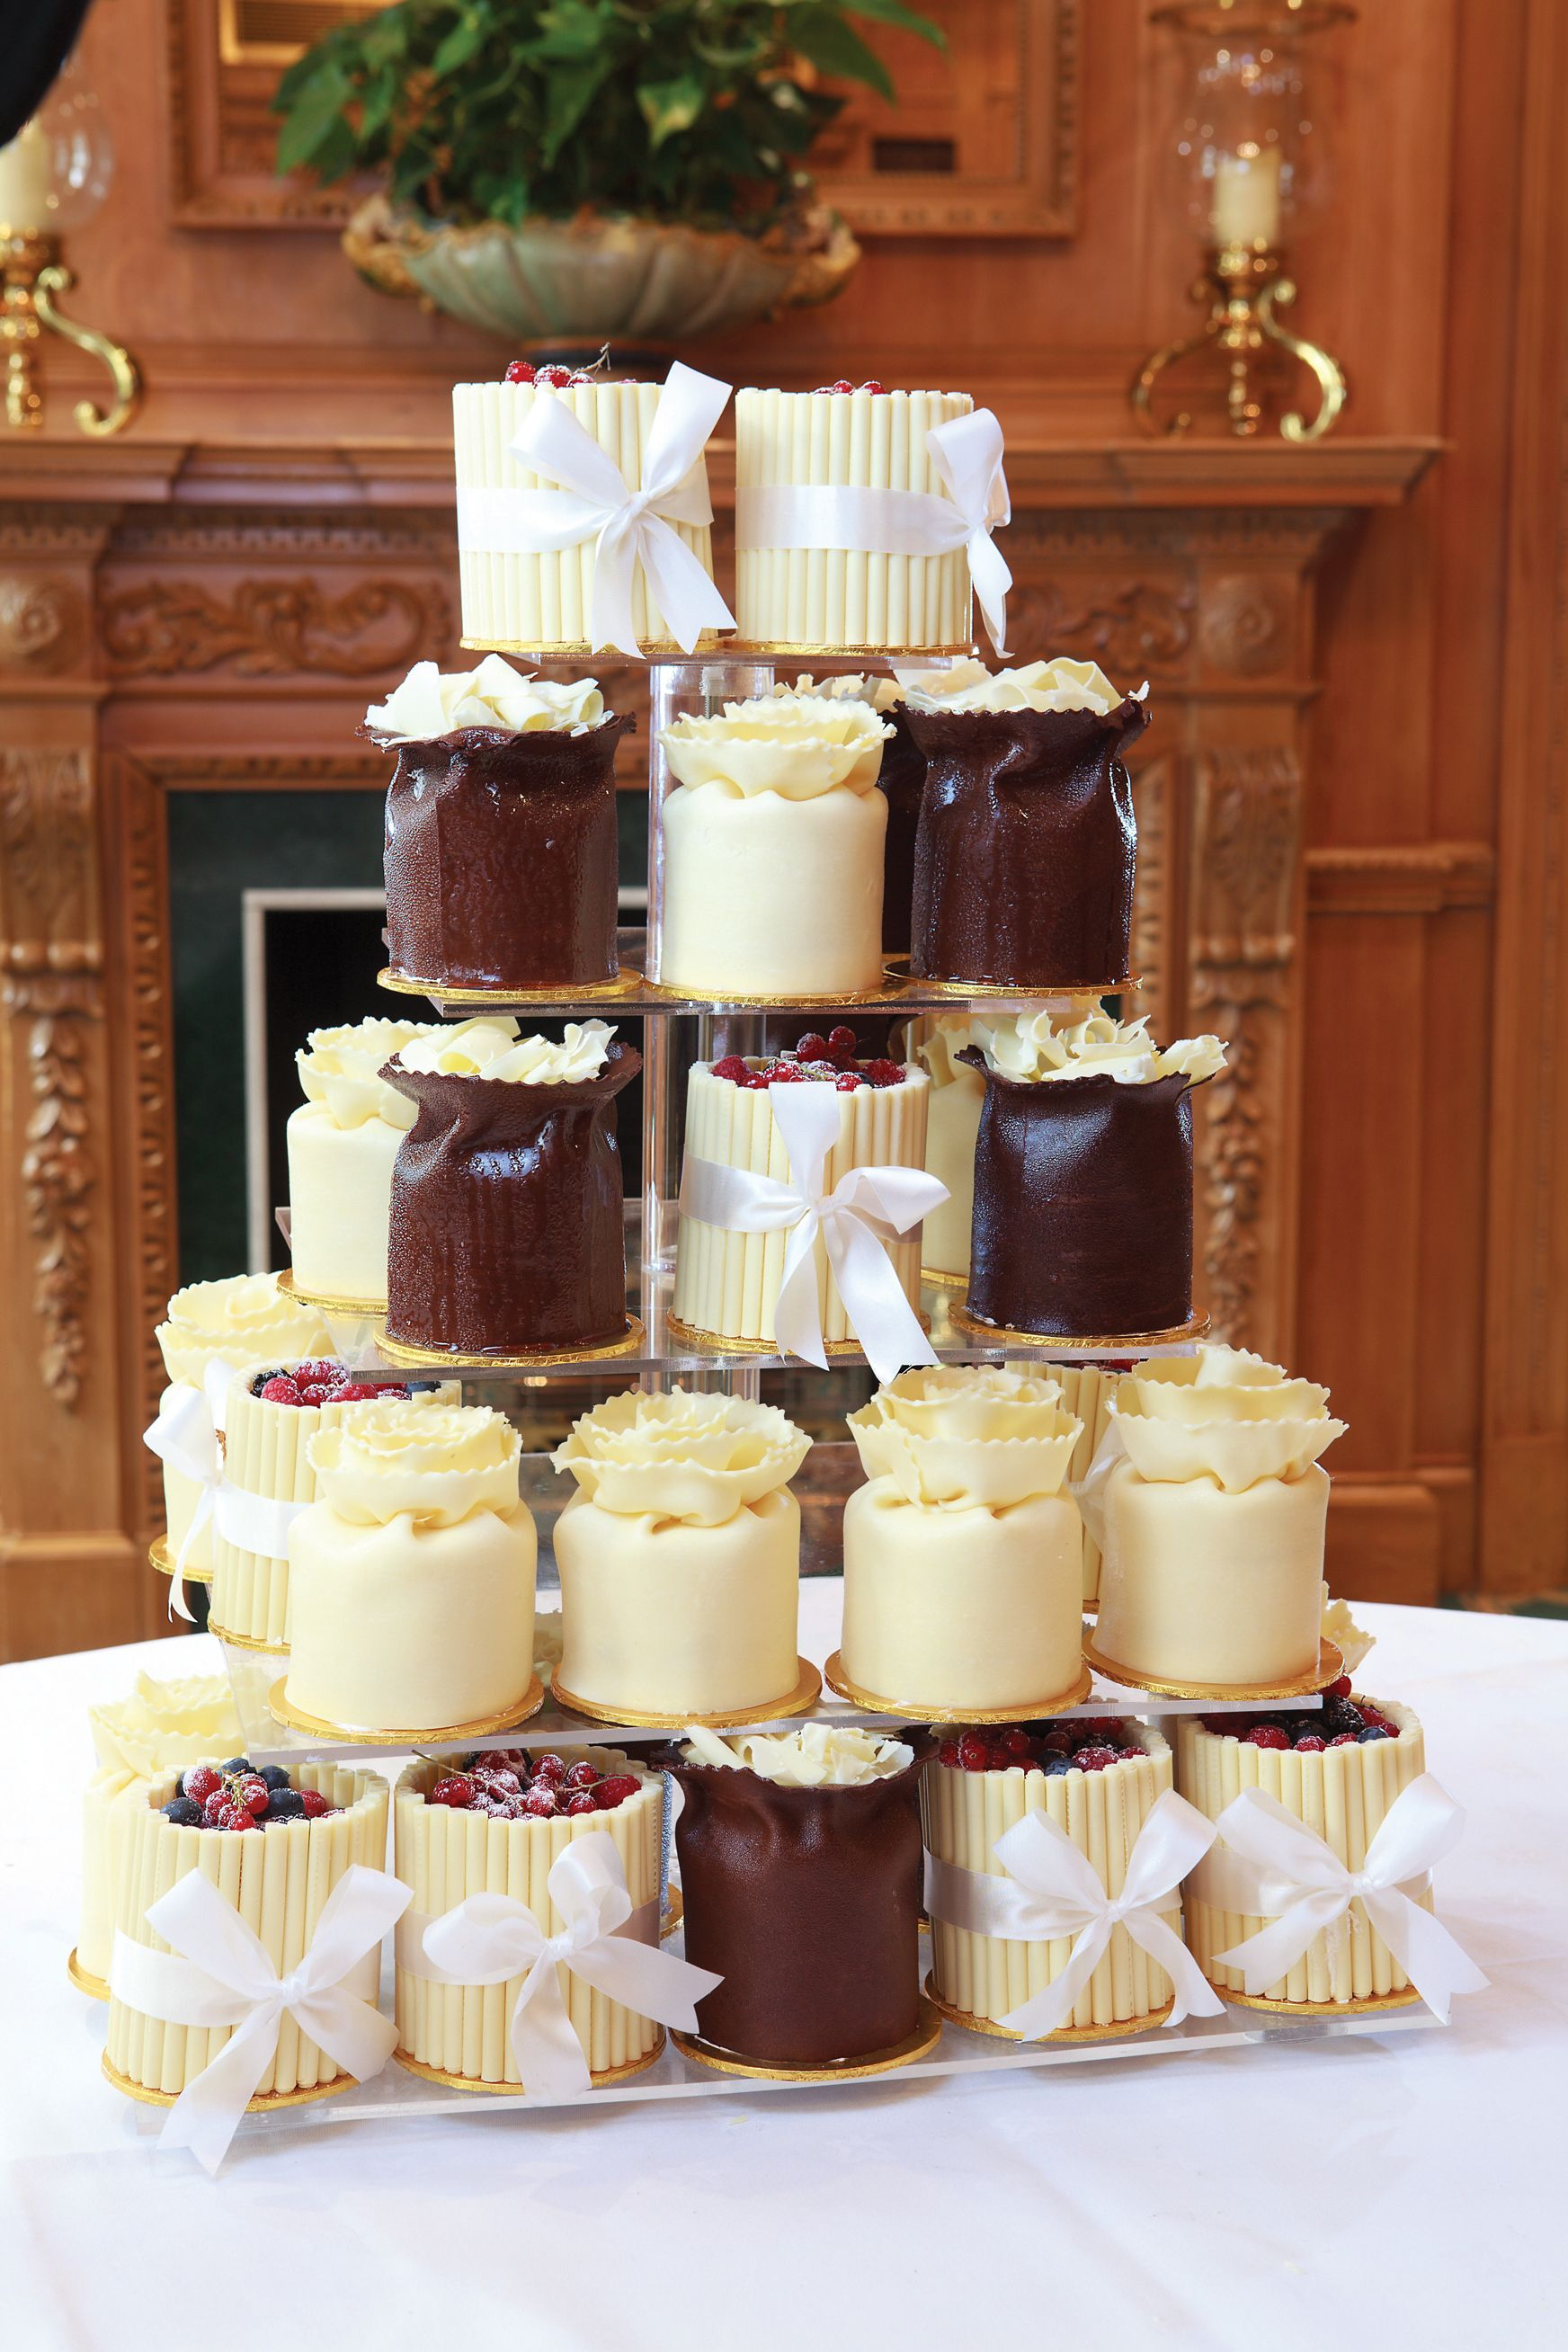 The ultimate cupcake style wedding cake. A selection of Patisserie Valerie  signature chocolate gateaux from